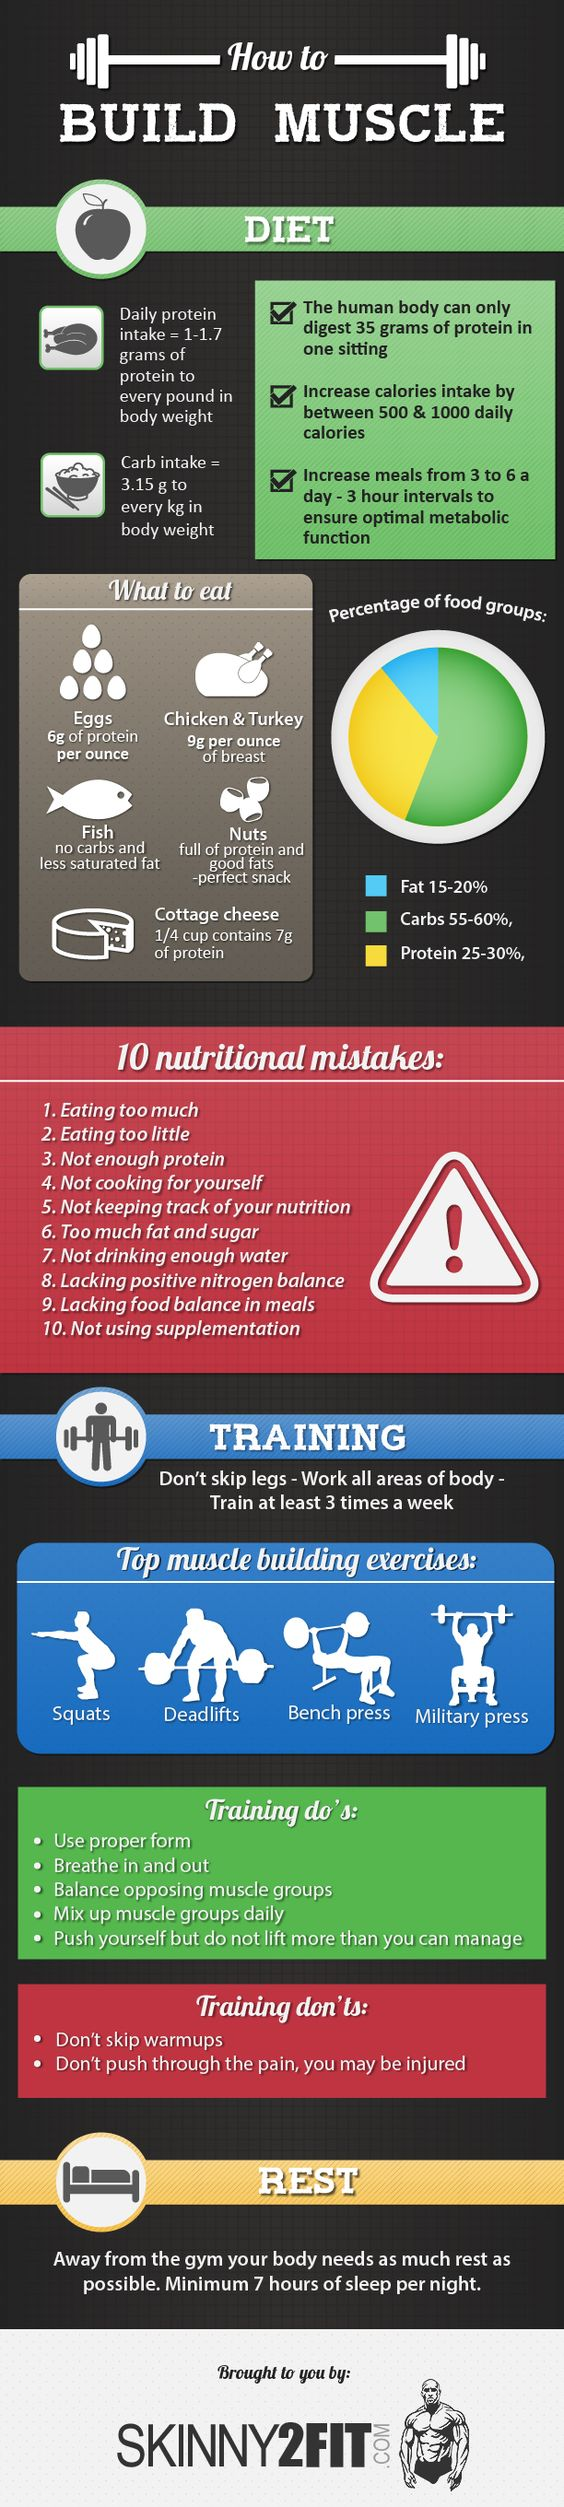 Fitness | Tipsögraphic | More fitness tips at http://www.tipsographic.com/